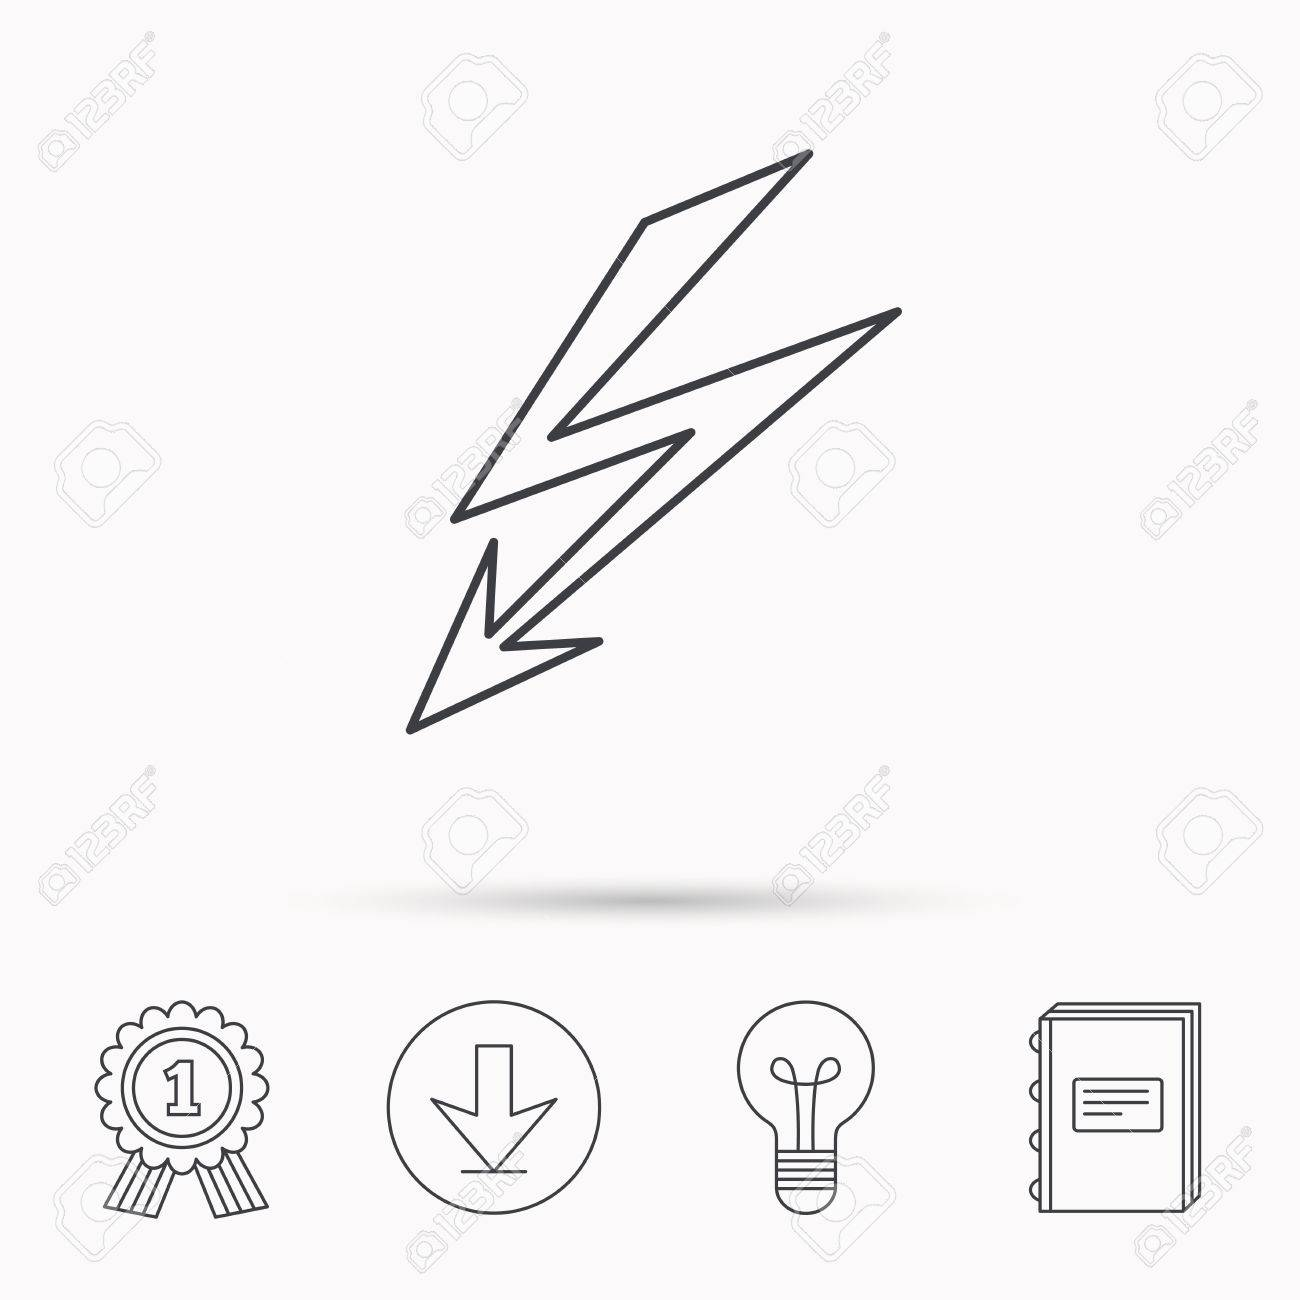 Excellent power supply symbol ideas simple wiring diagram images